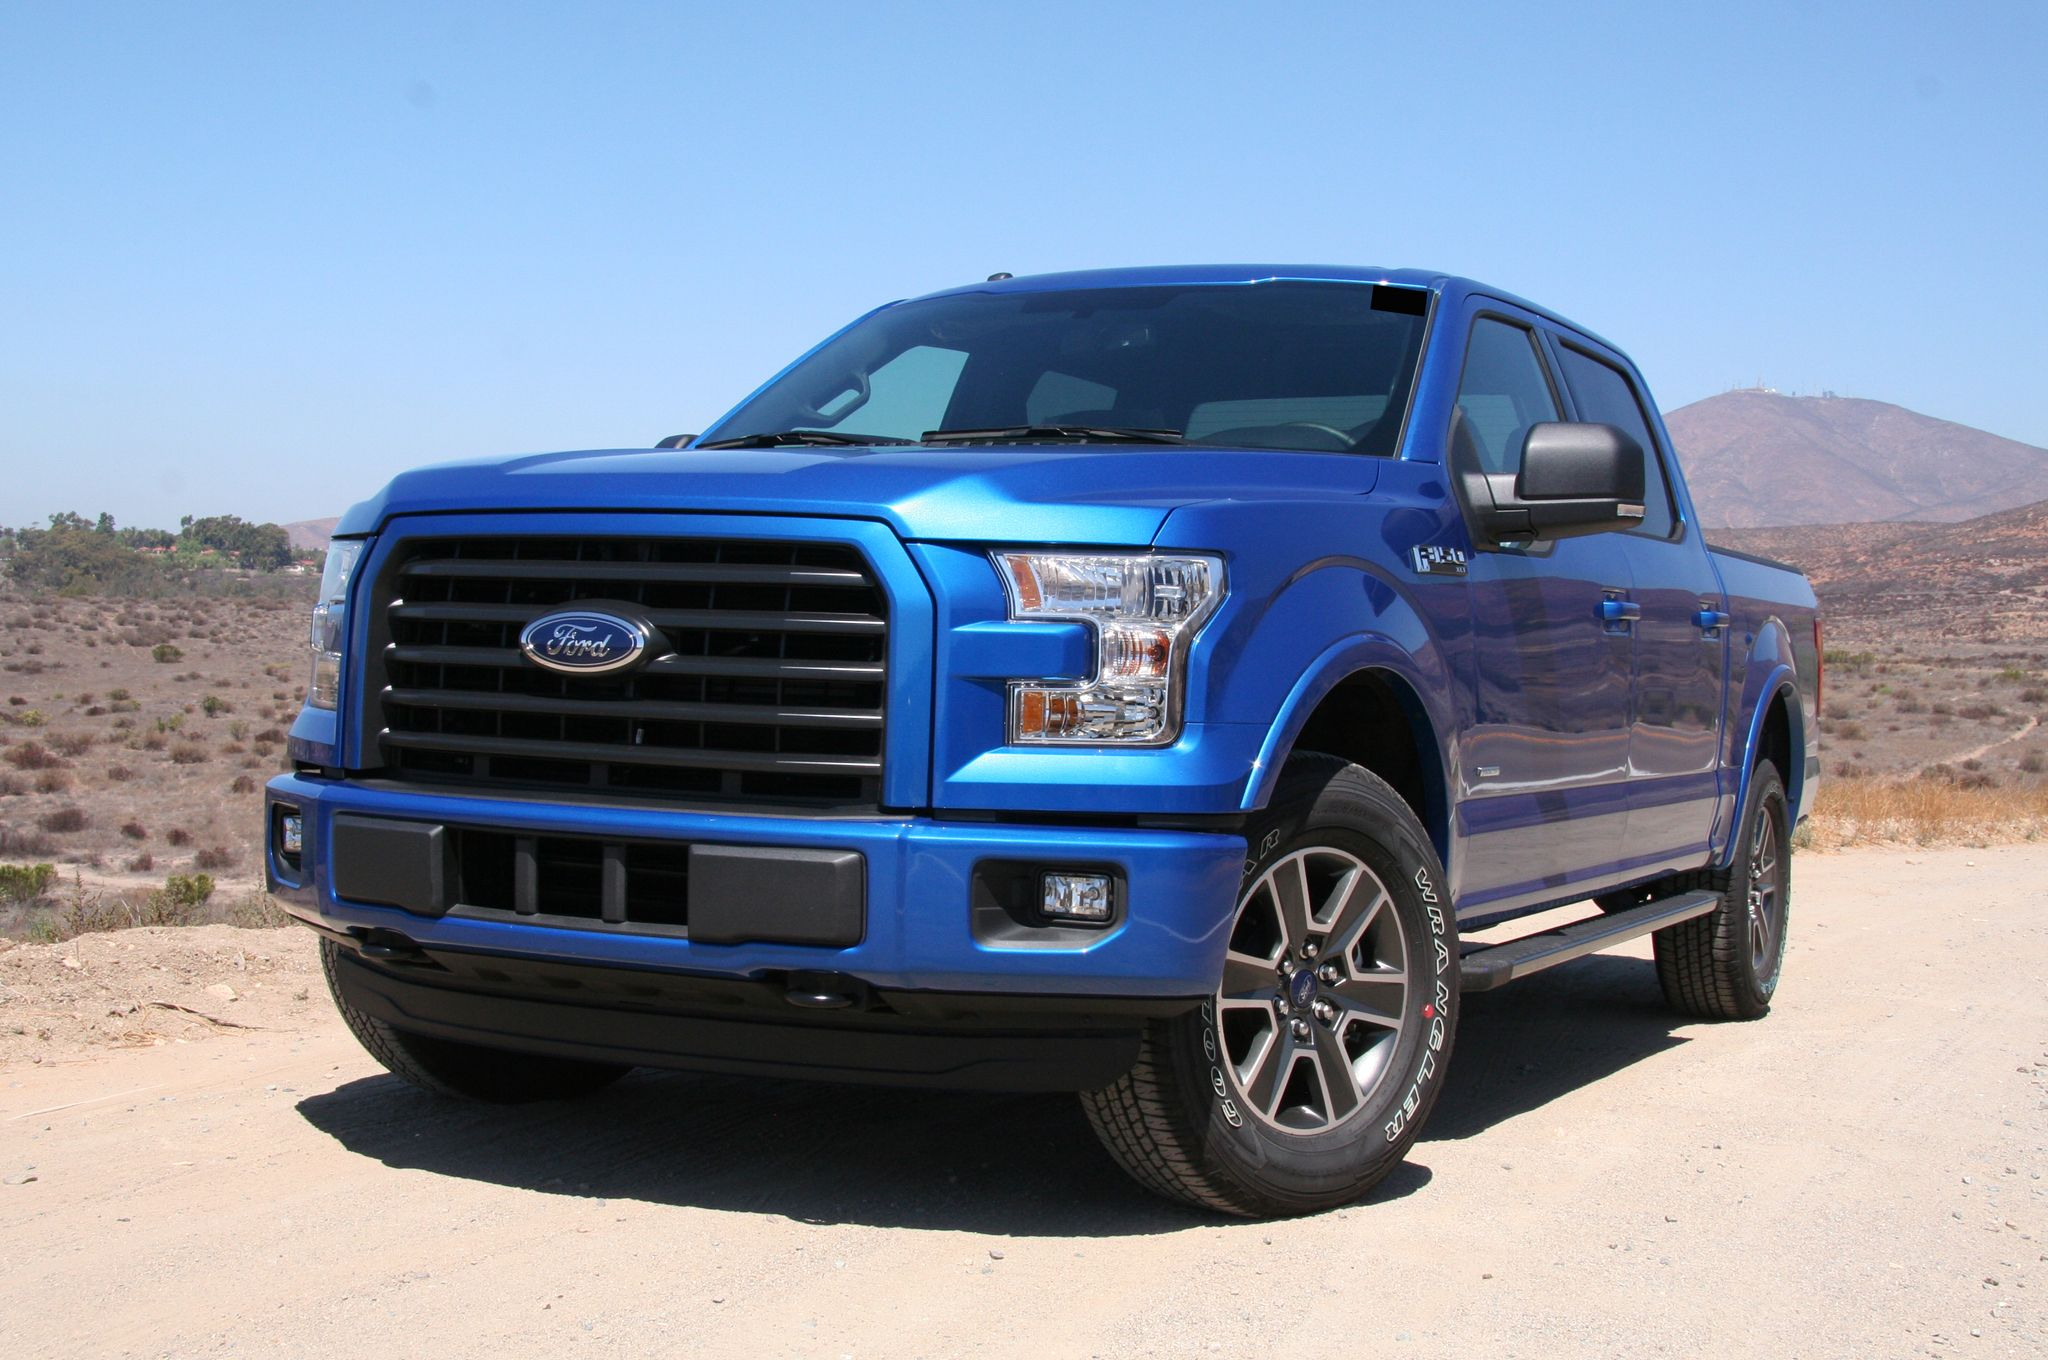 Ford xlt photo - 6